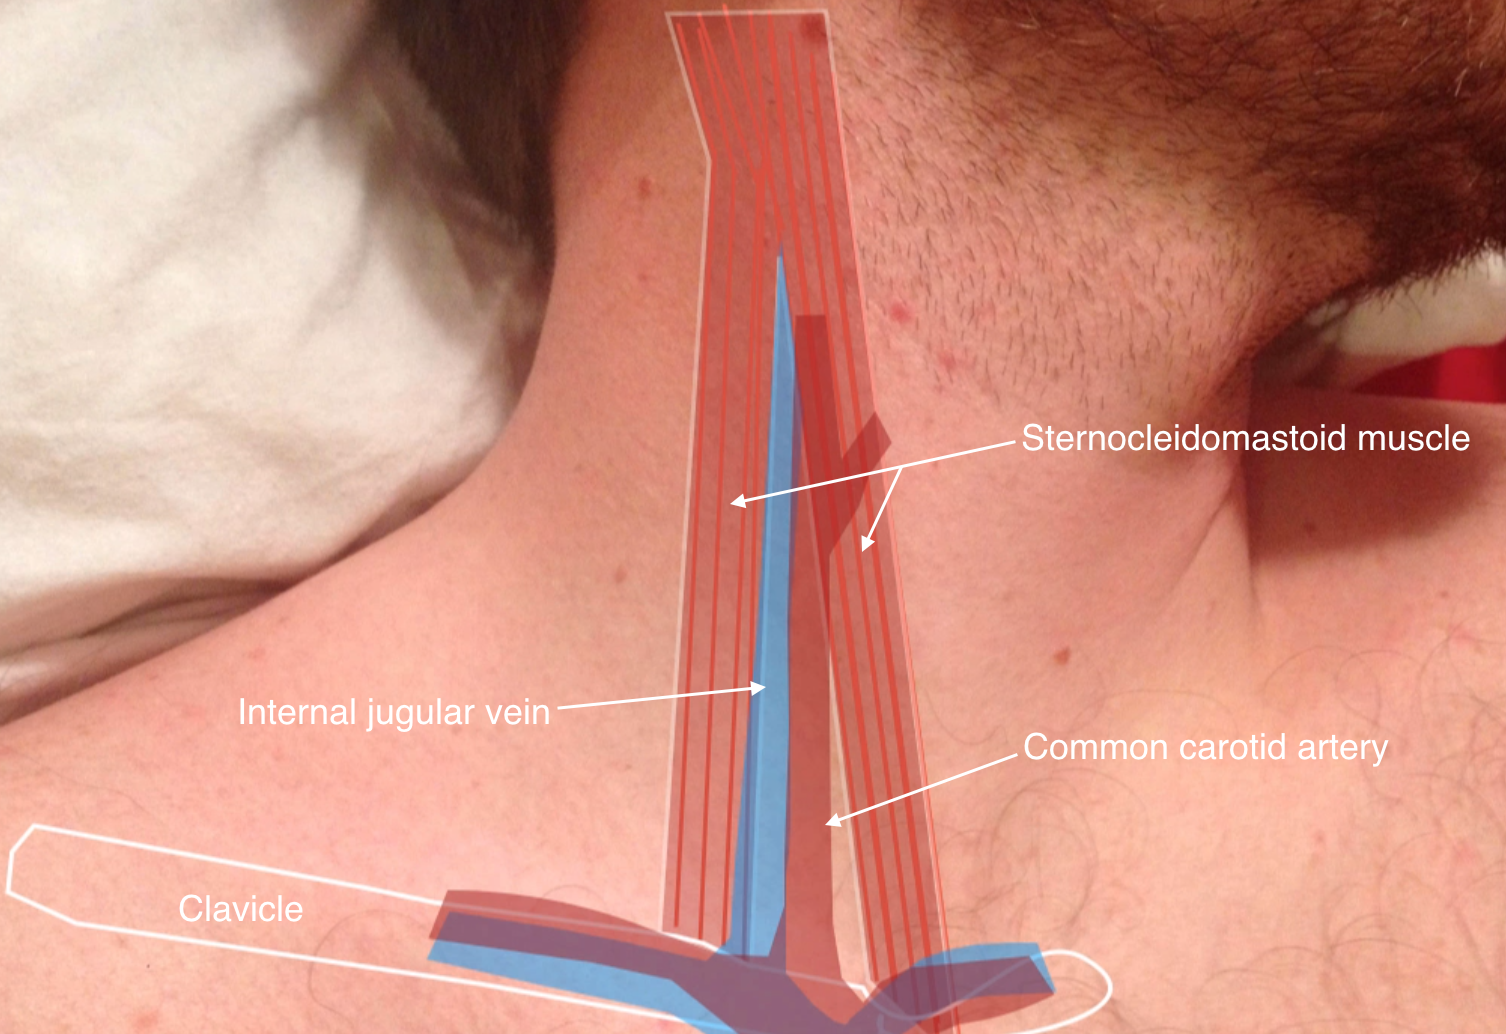 Central line insertion anatomy